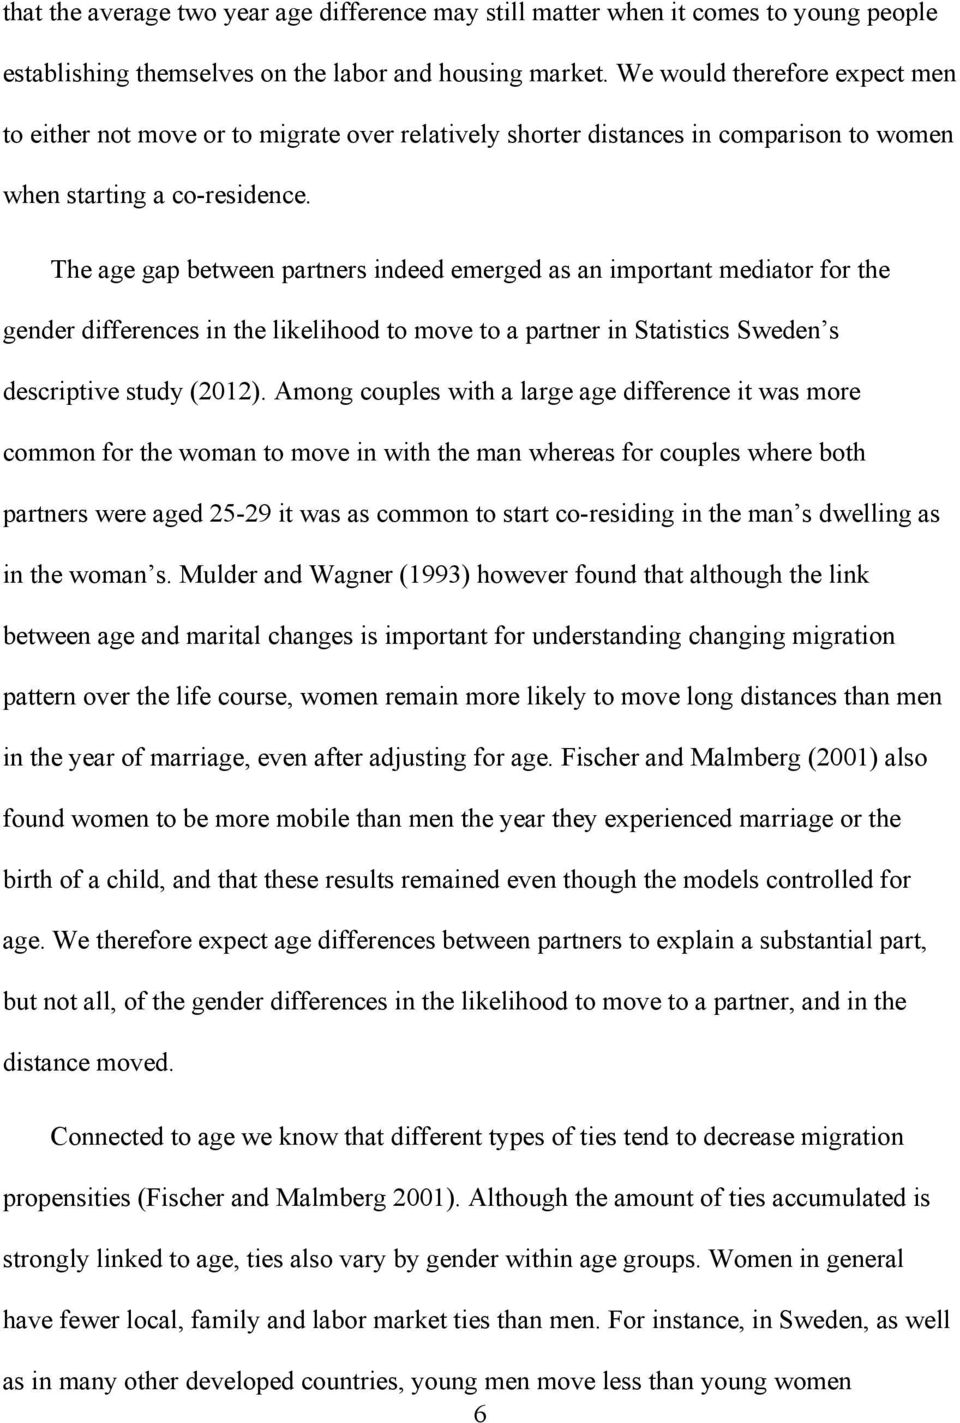 The age gap between partners indeed emerged as an important mediator for the gender differences in the likelihood to move to a partner in Statistics Sweden s descriptive study (2012).